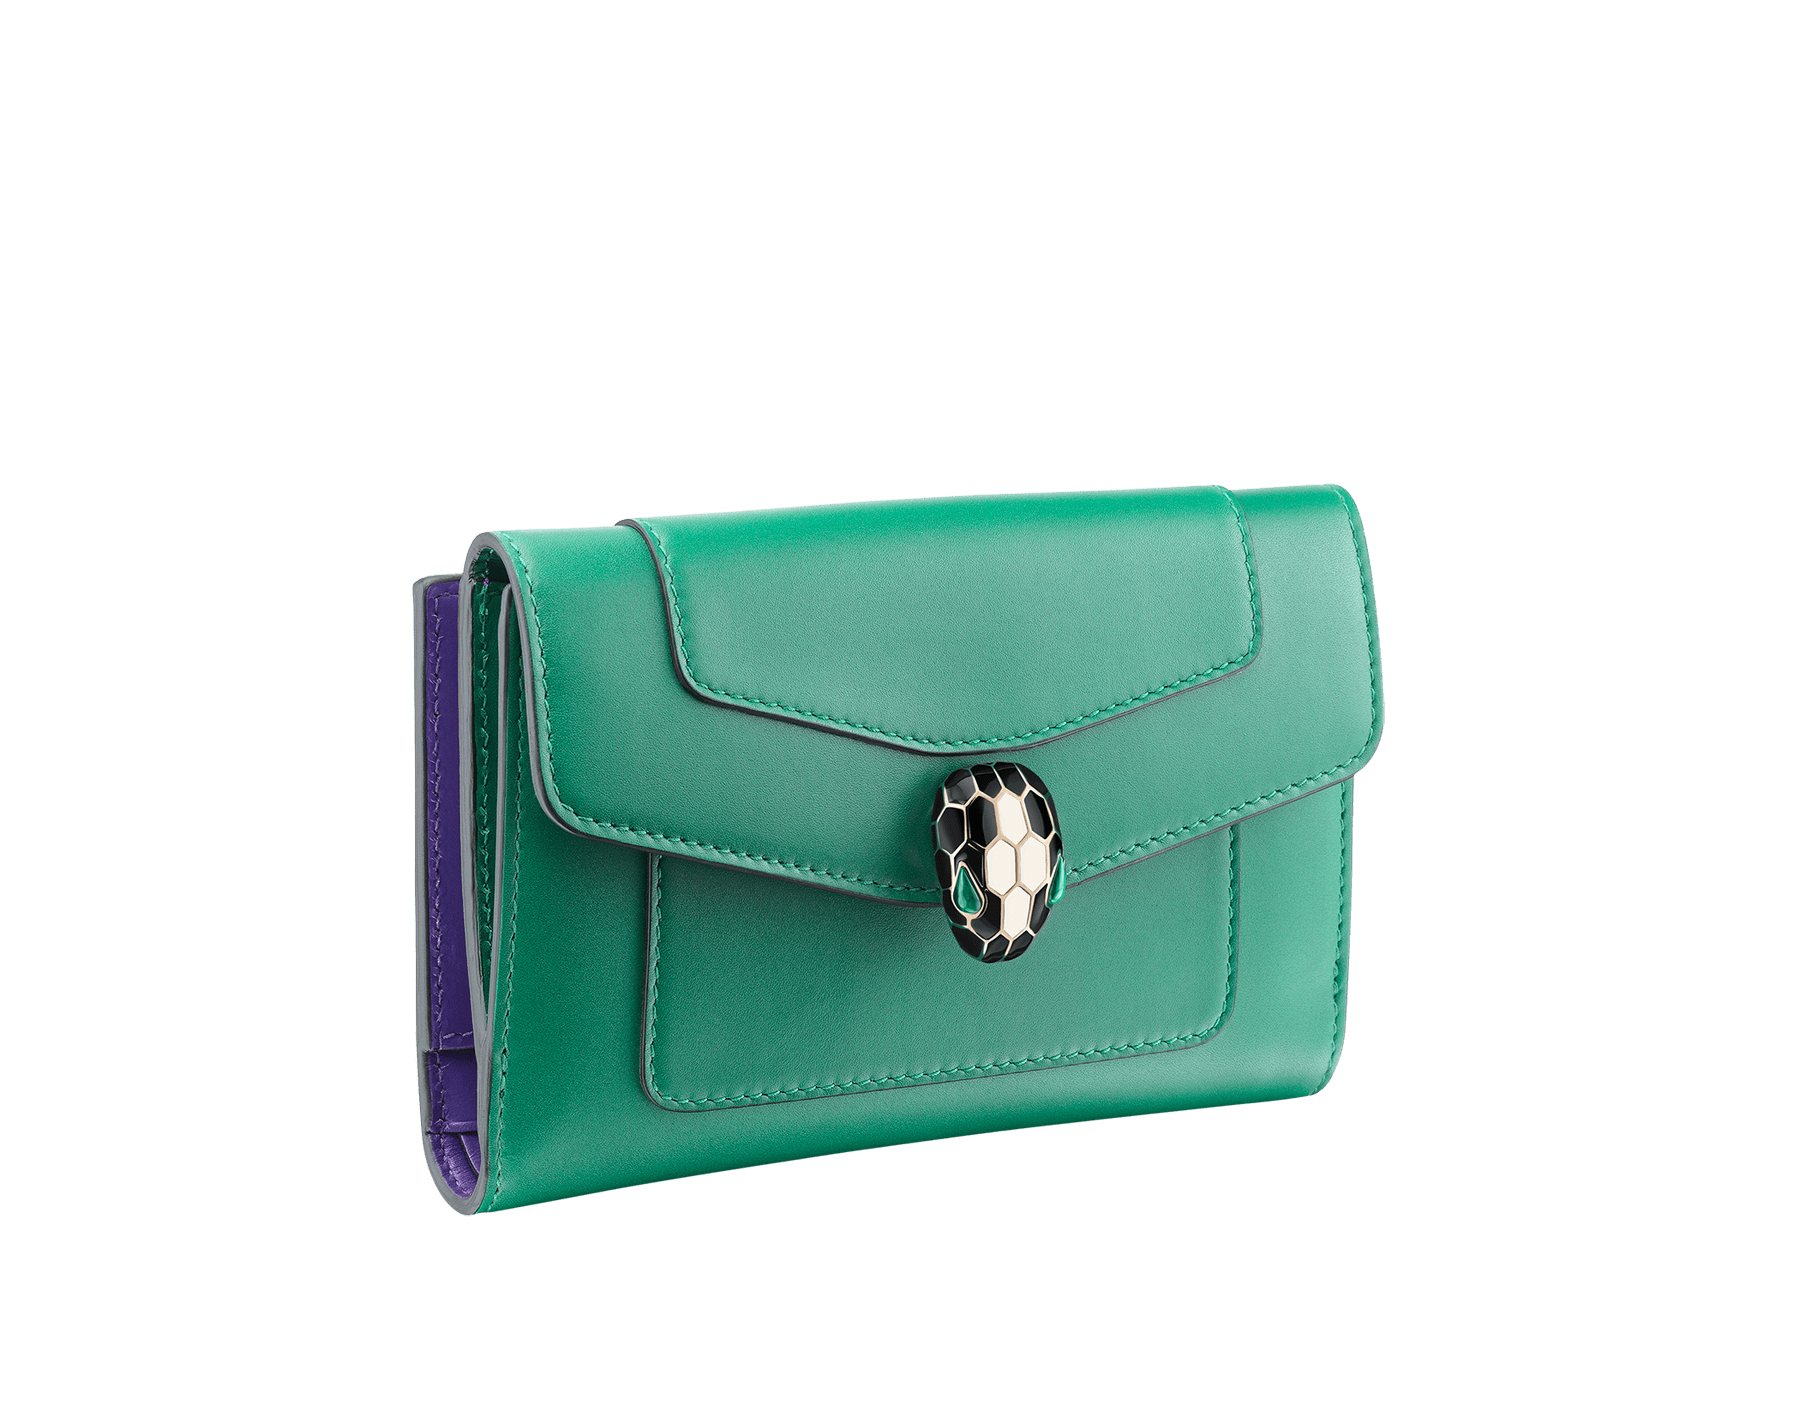 Compact pochette in royal sapphire calf leather, teal topaz calf leather and plum amethyst nappa lining. Brass light gold plated Serpenti head stud closure with green malachite eyes. SEA-COMPPOCHETTE image 1